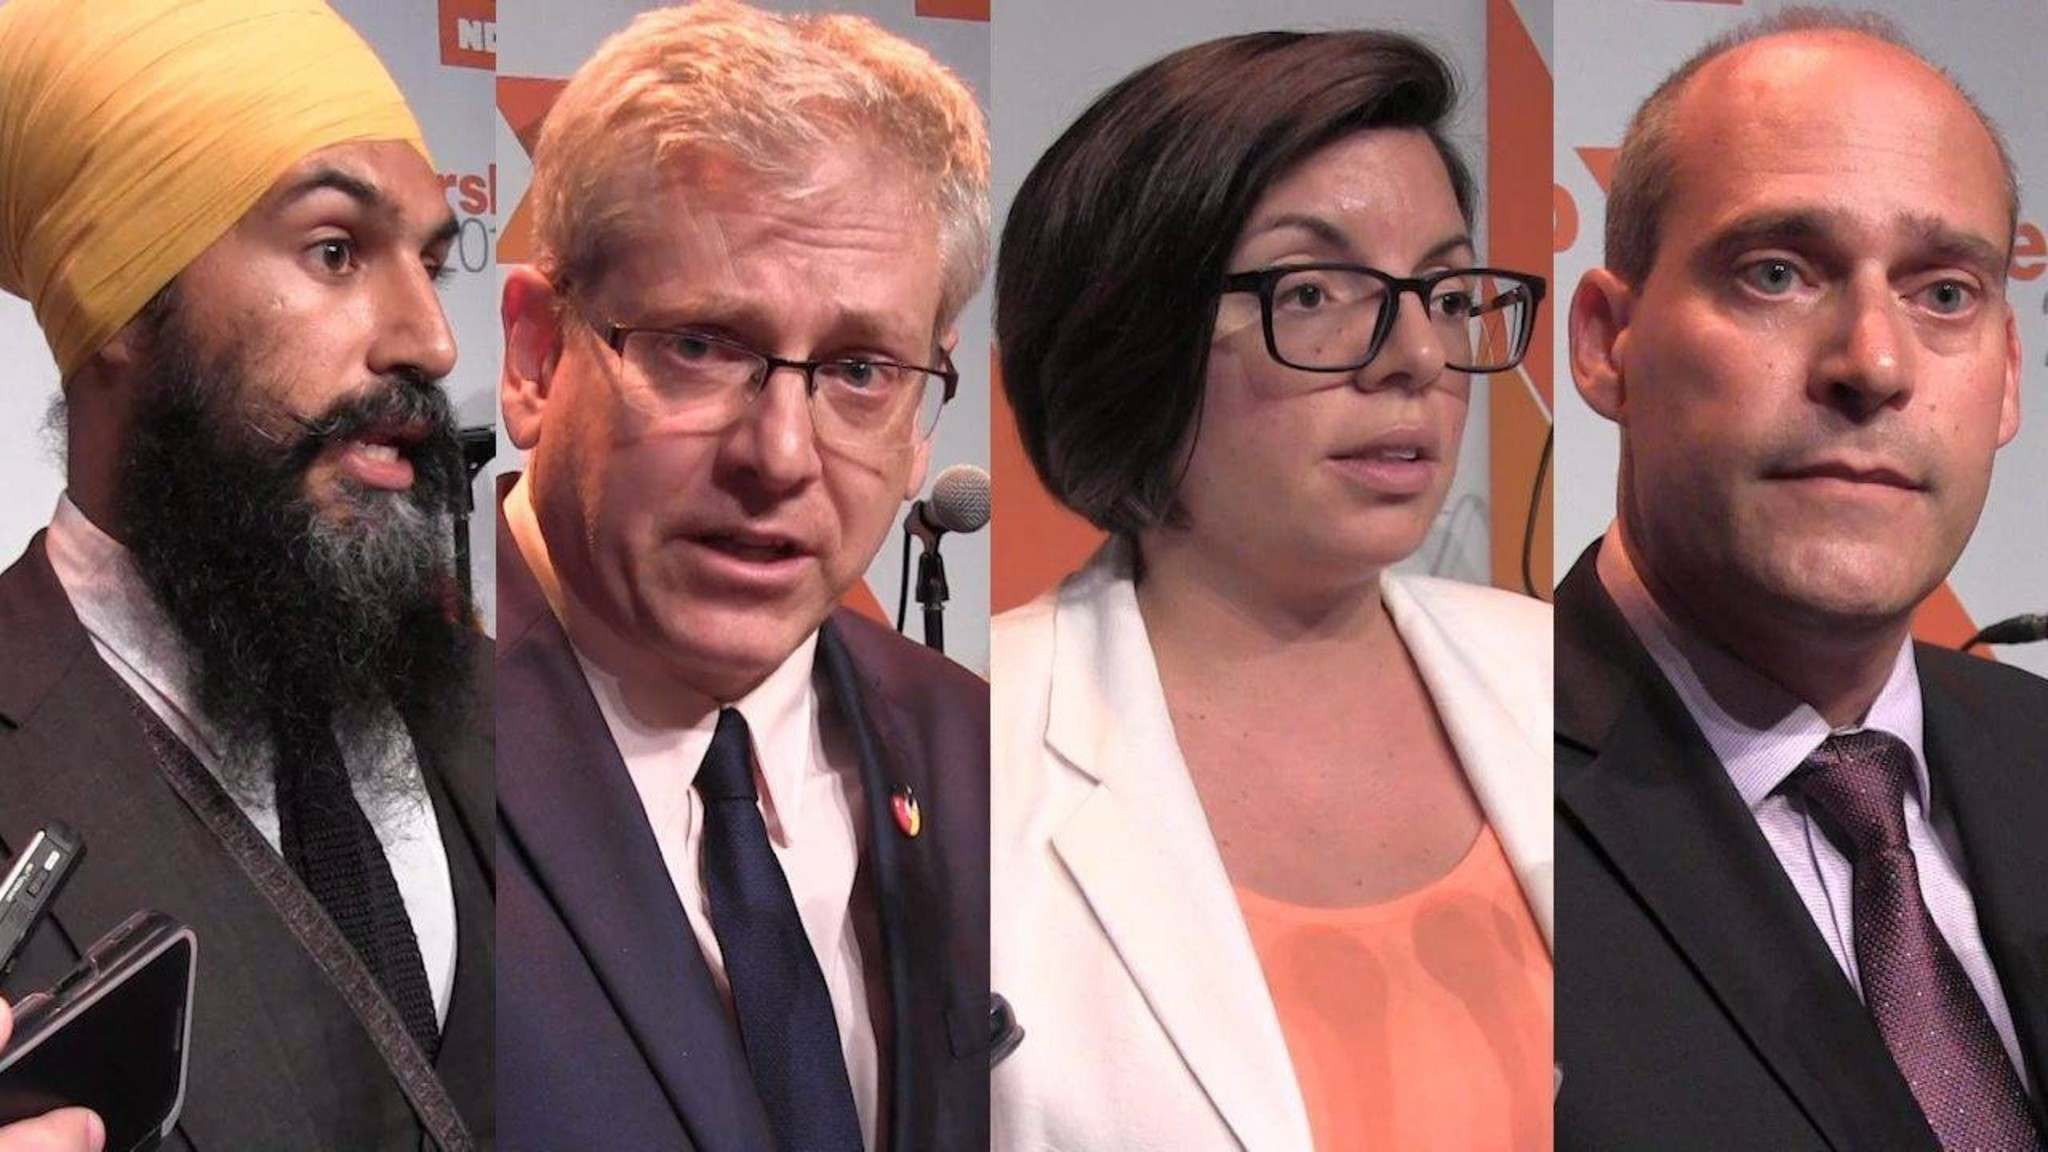 THE CANADIAN PRESS FILES</p><p>Federal NDP leadership candidates Jagmeet Singh, left to right, Charlie Angus, Niki Ashton and Guy Caron are seen in this four composite image made from video as they speak to the media following a debate in Montreal on Aug. 27, 2017.</p>